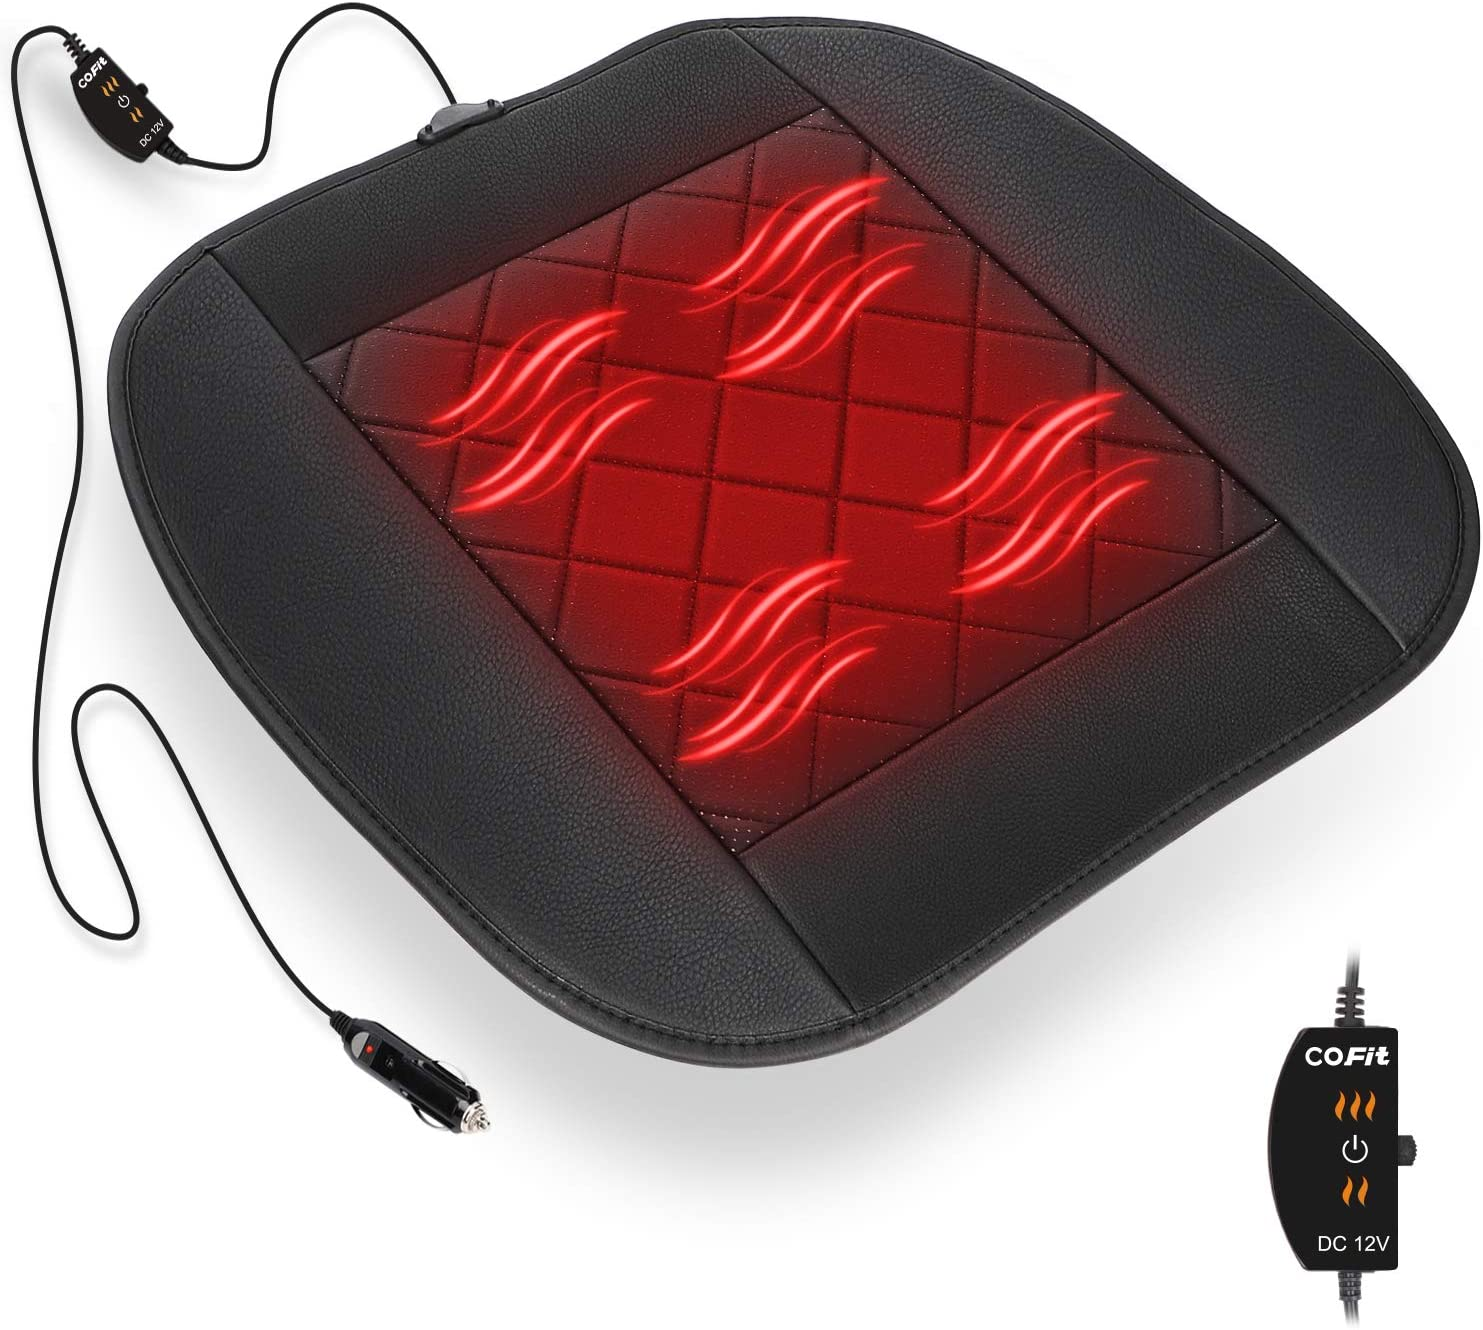 COFIT Heating Car Seat Cushion, 12V Comfortable Seat Pad Heater Perfect for Cold Weather and Winter Driving